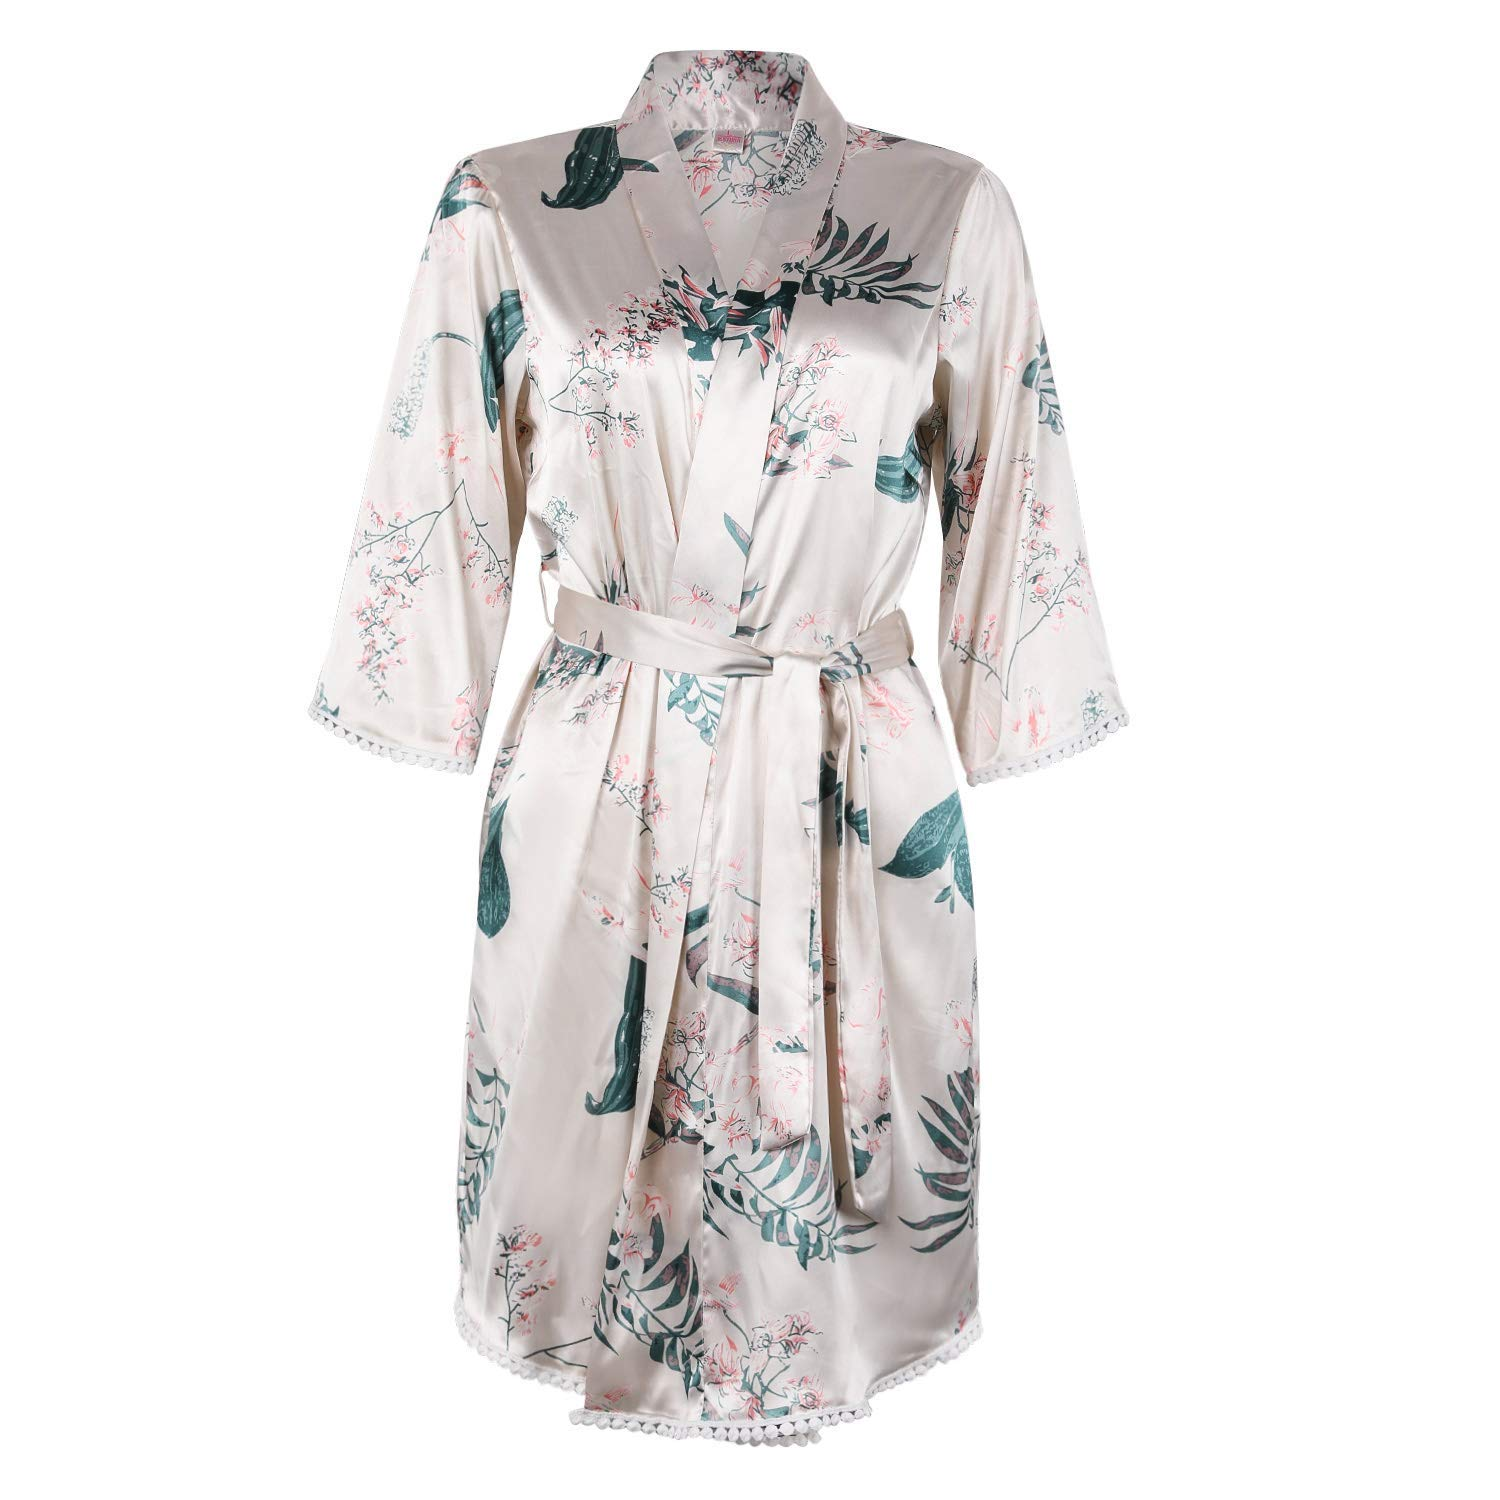 13th wedding anniversary gift ideas - A beautiful silk robe for wife